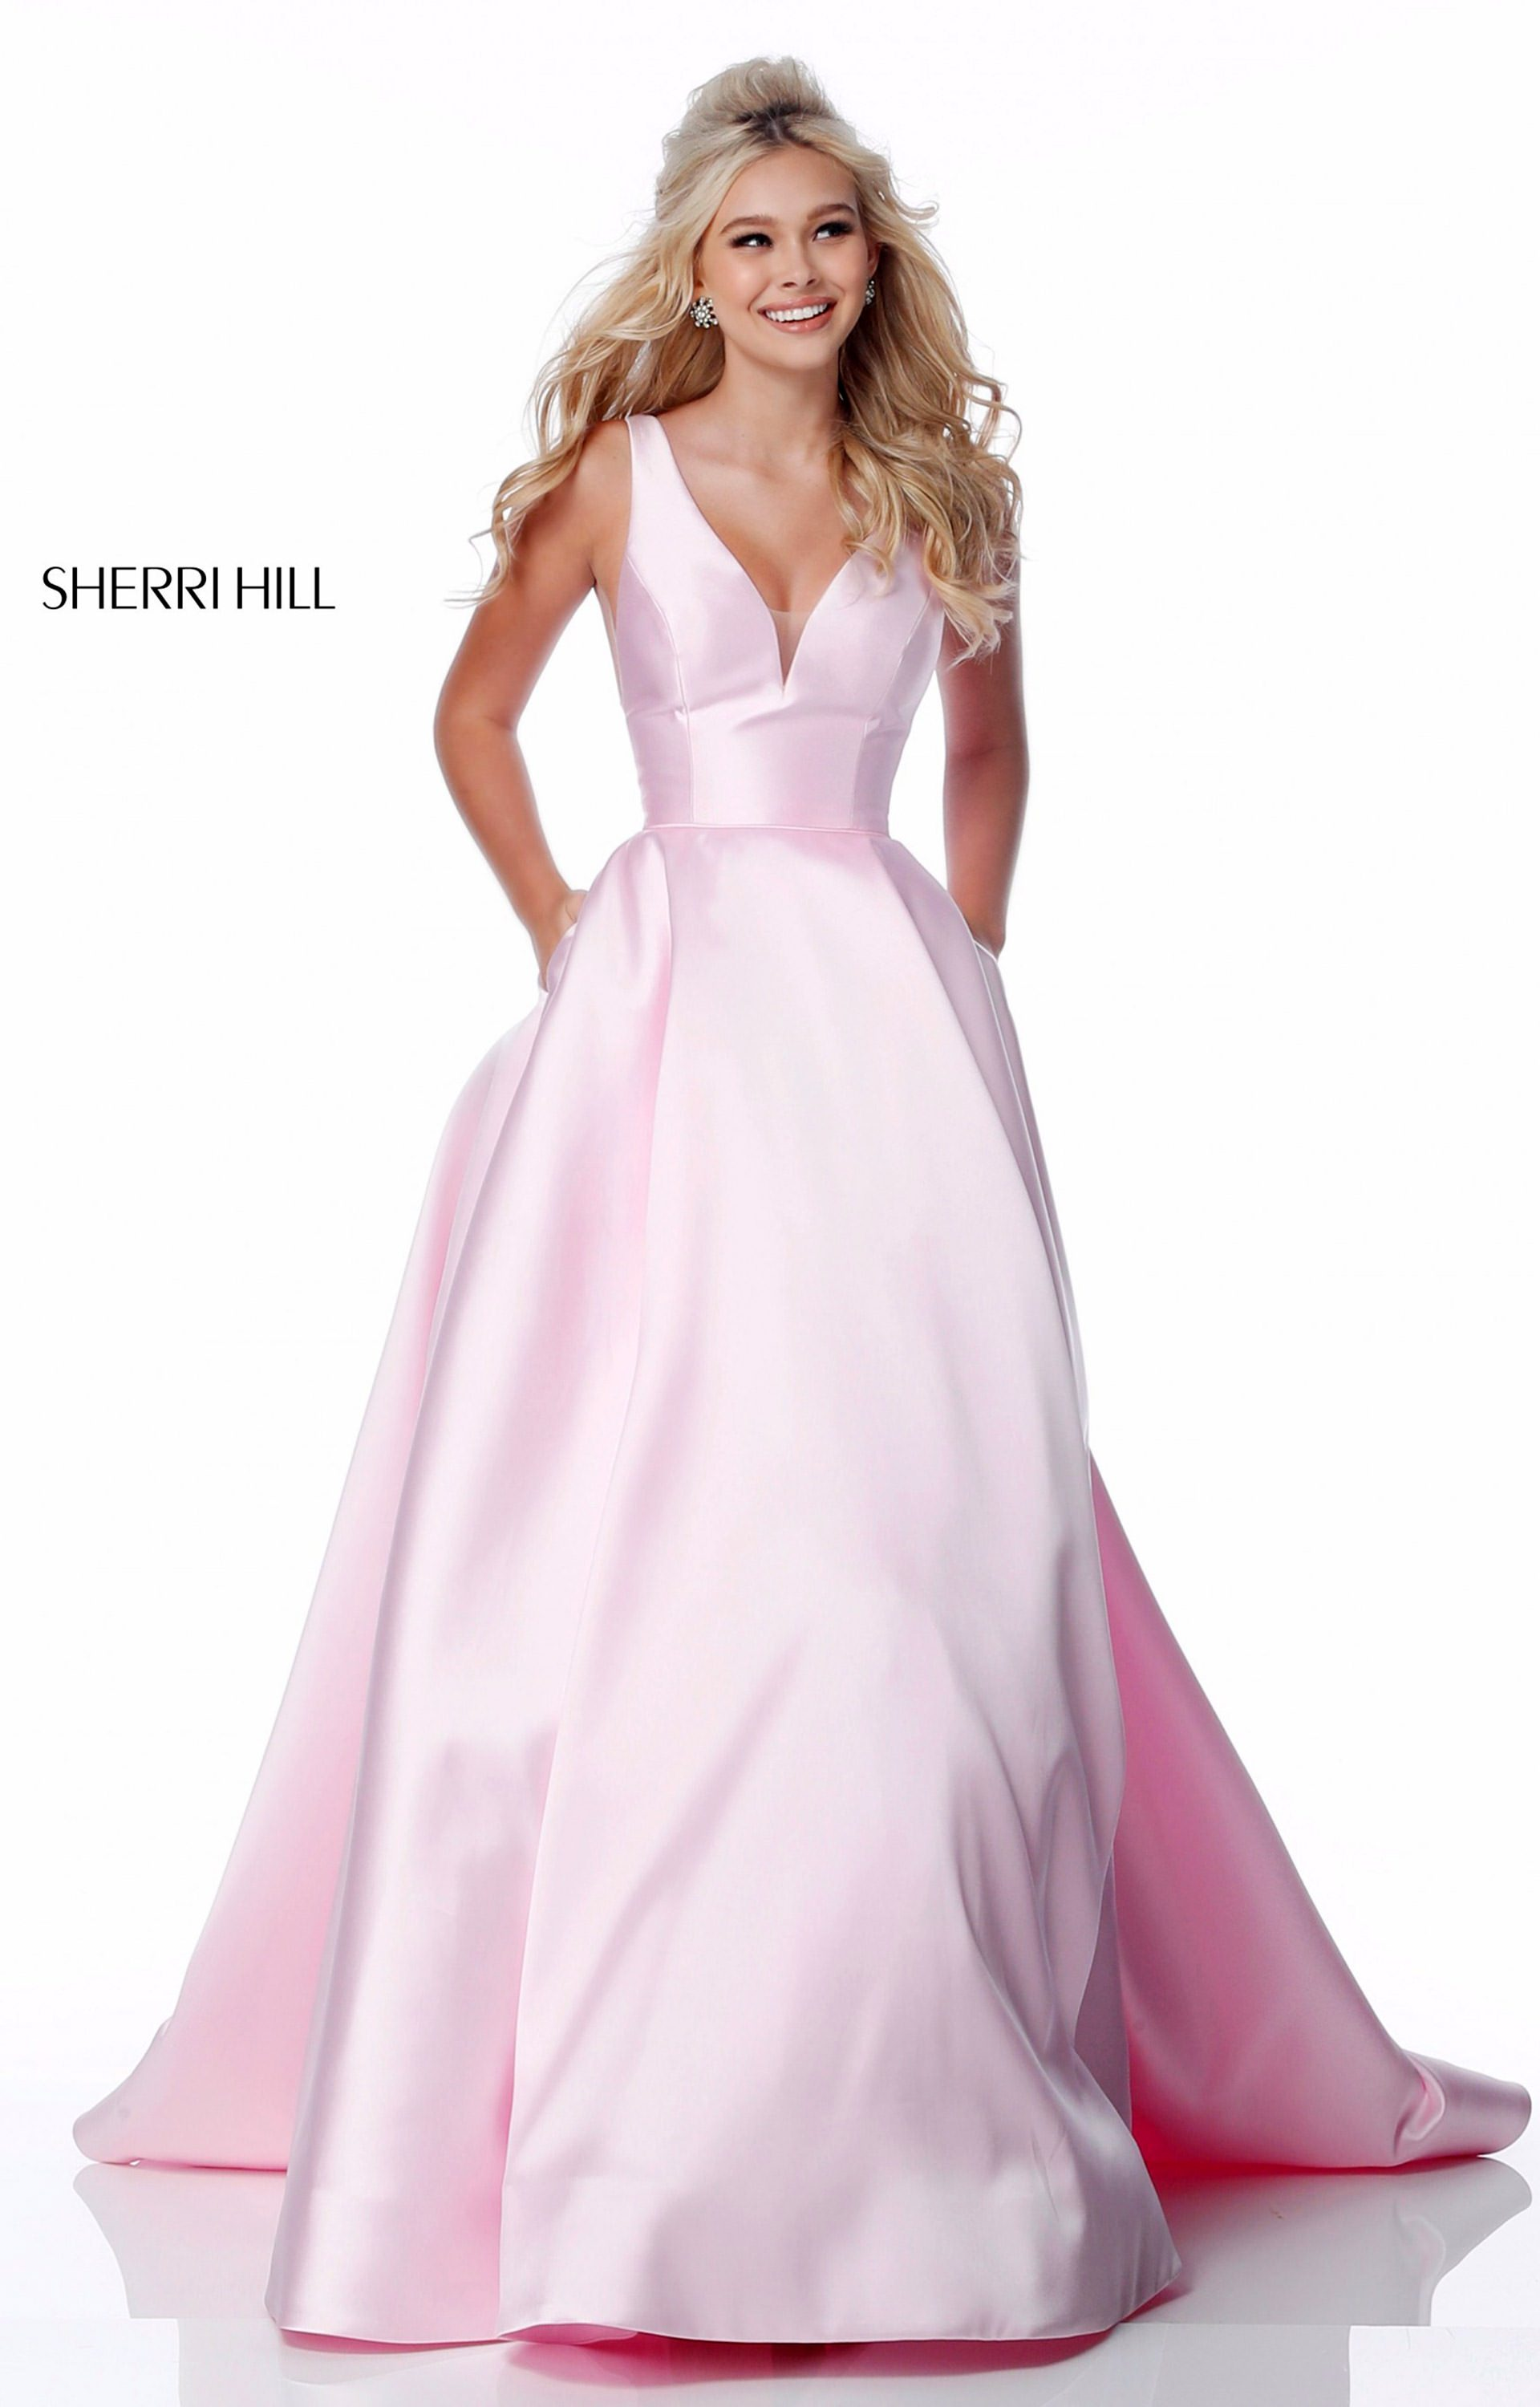 Sherri Hill 51856 - Long A-Line Mikado Ball Gown Prom Dress